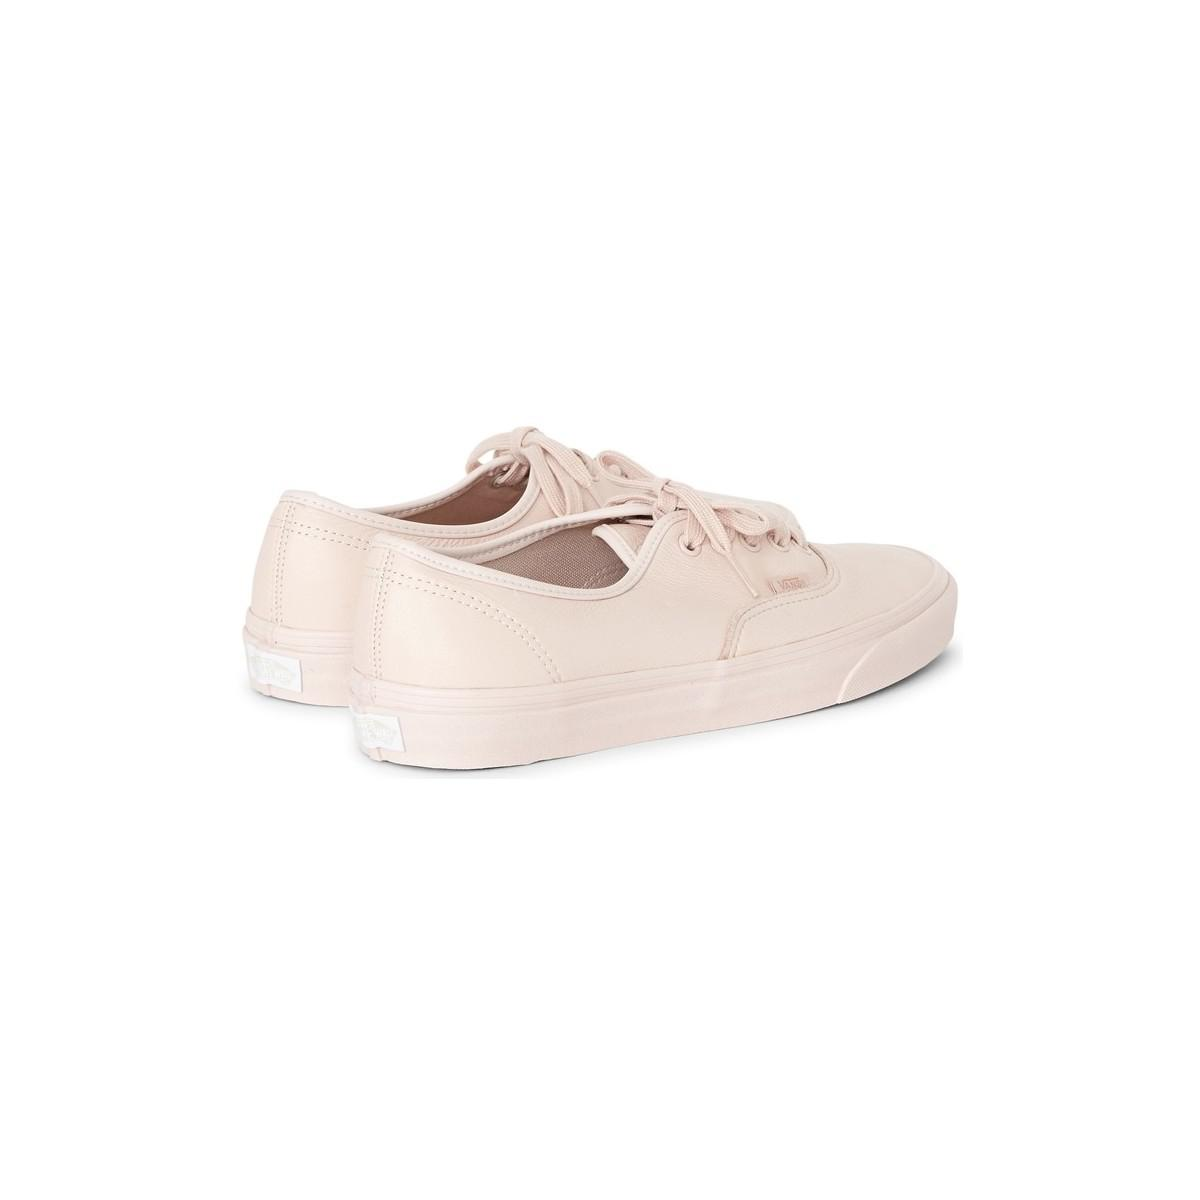 Vans Ua Authentic Leather Plimsoll Pink Men's Shoes (trainers) In Pink